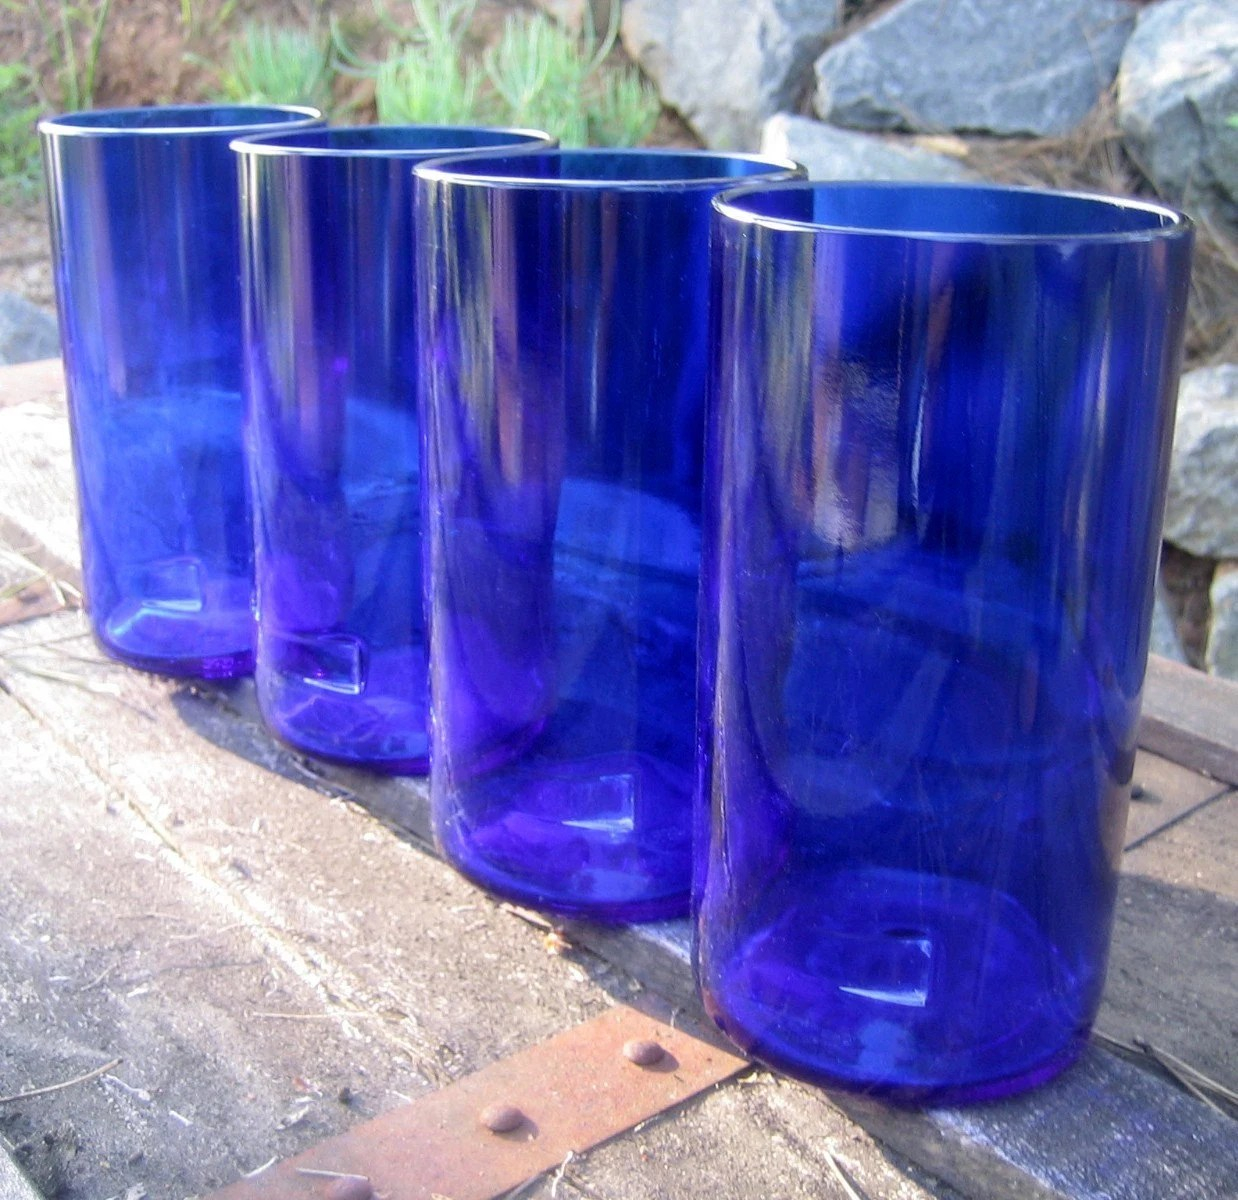 Recycled Glass Bottle Tumblers from Skyy Vodka bottles...reclaimed, repurposed